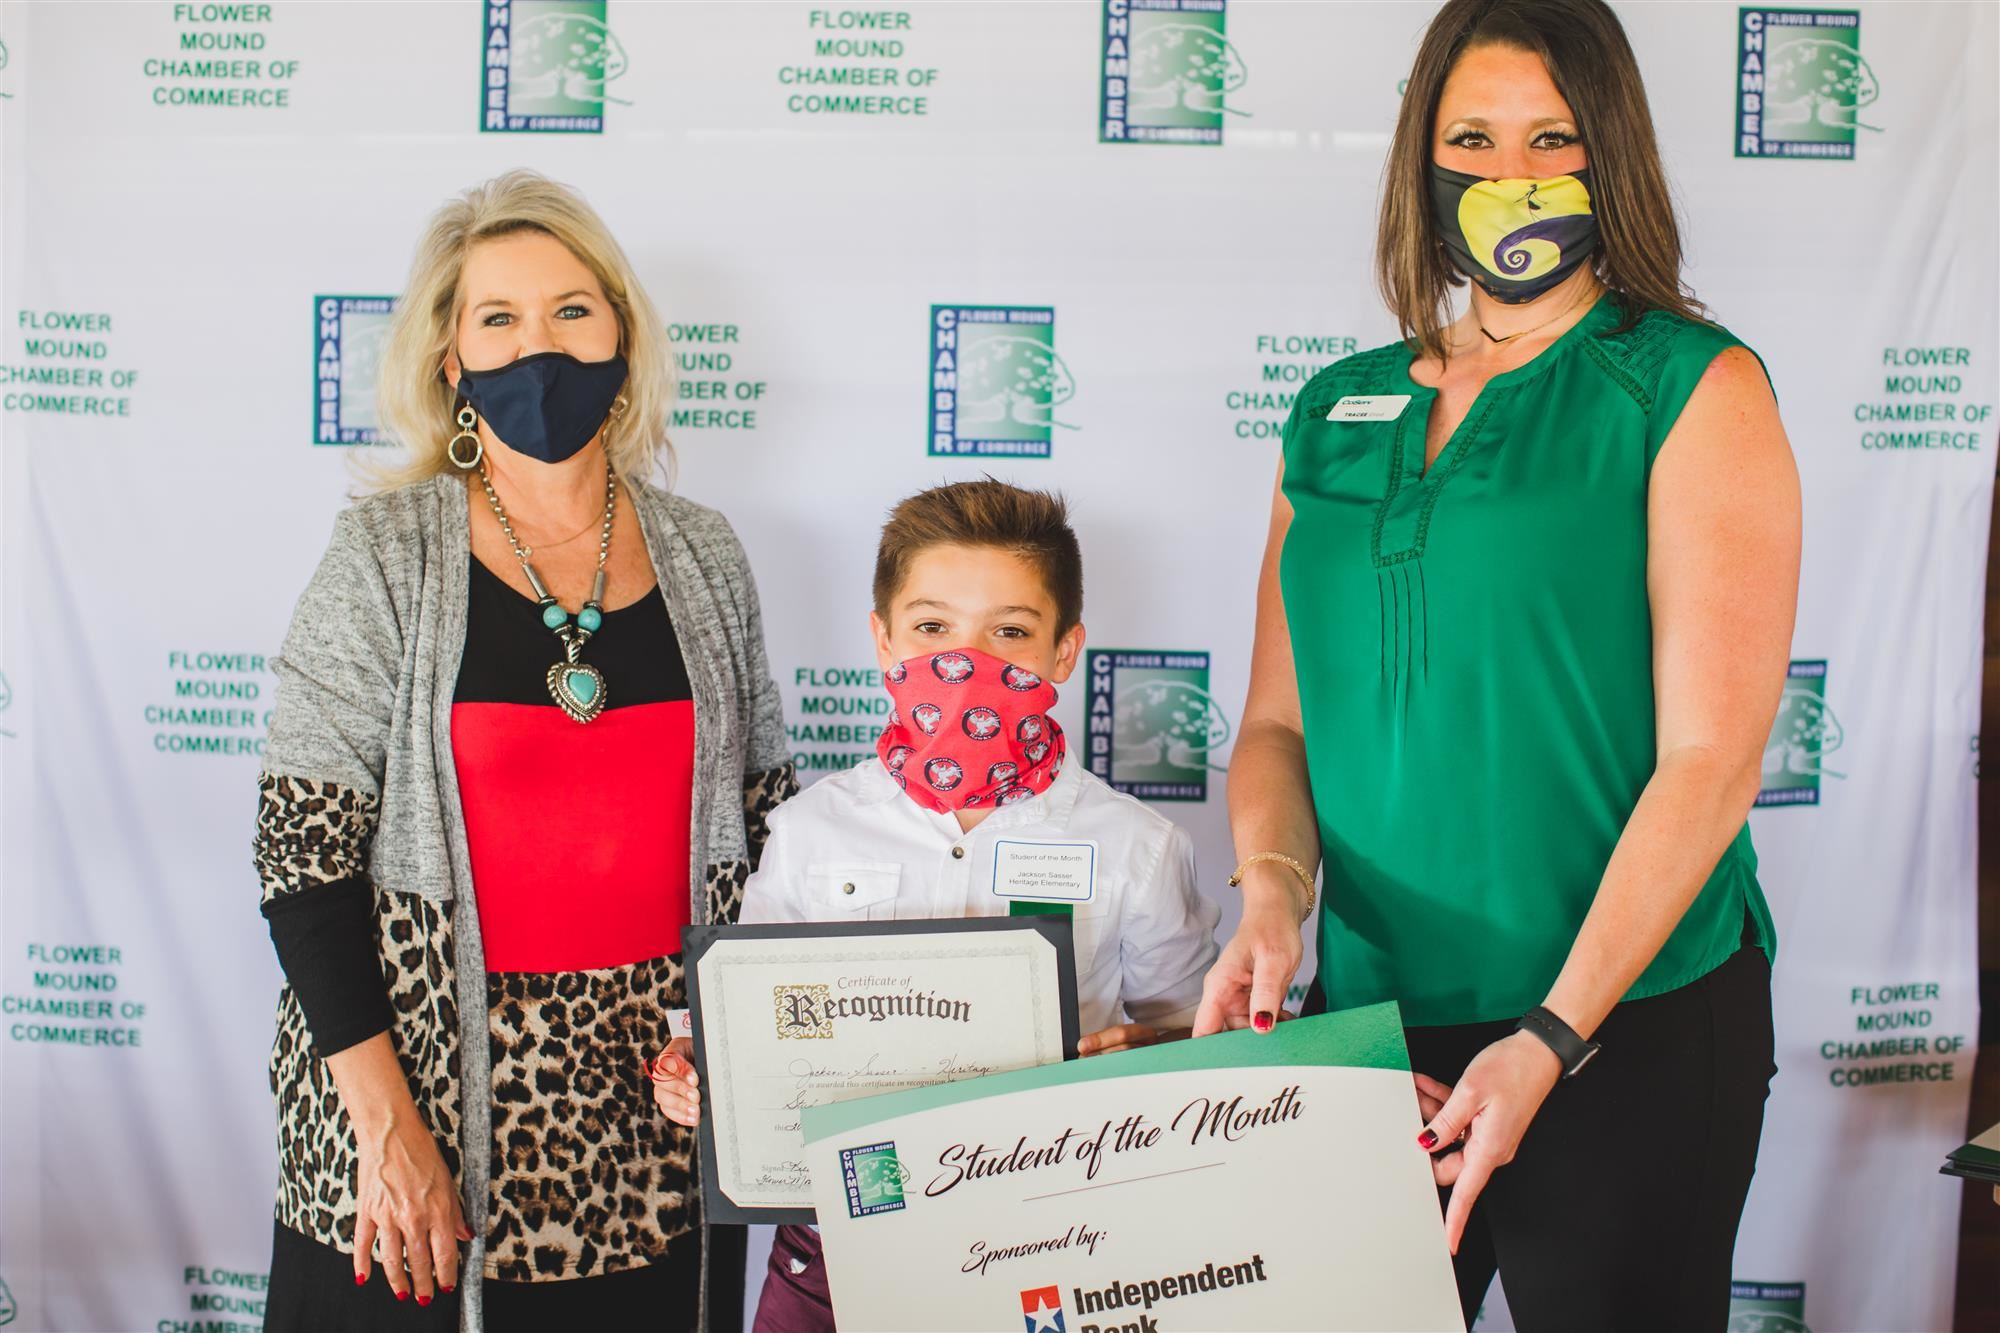 Heritage Elementary 5th-Grader Jackson Sasser named Flower Mound Chamber October Student of the Month.